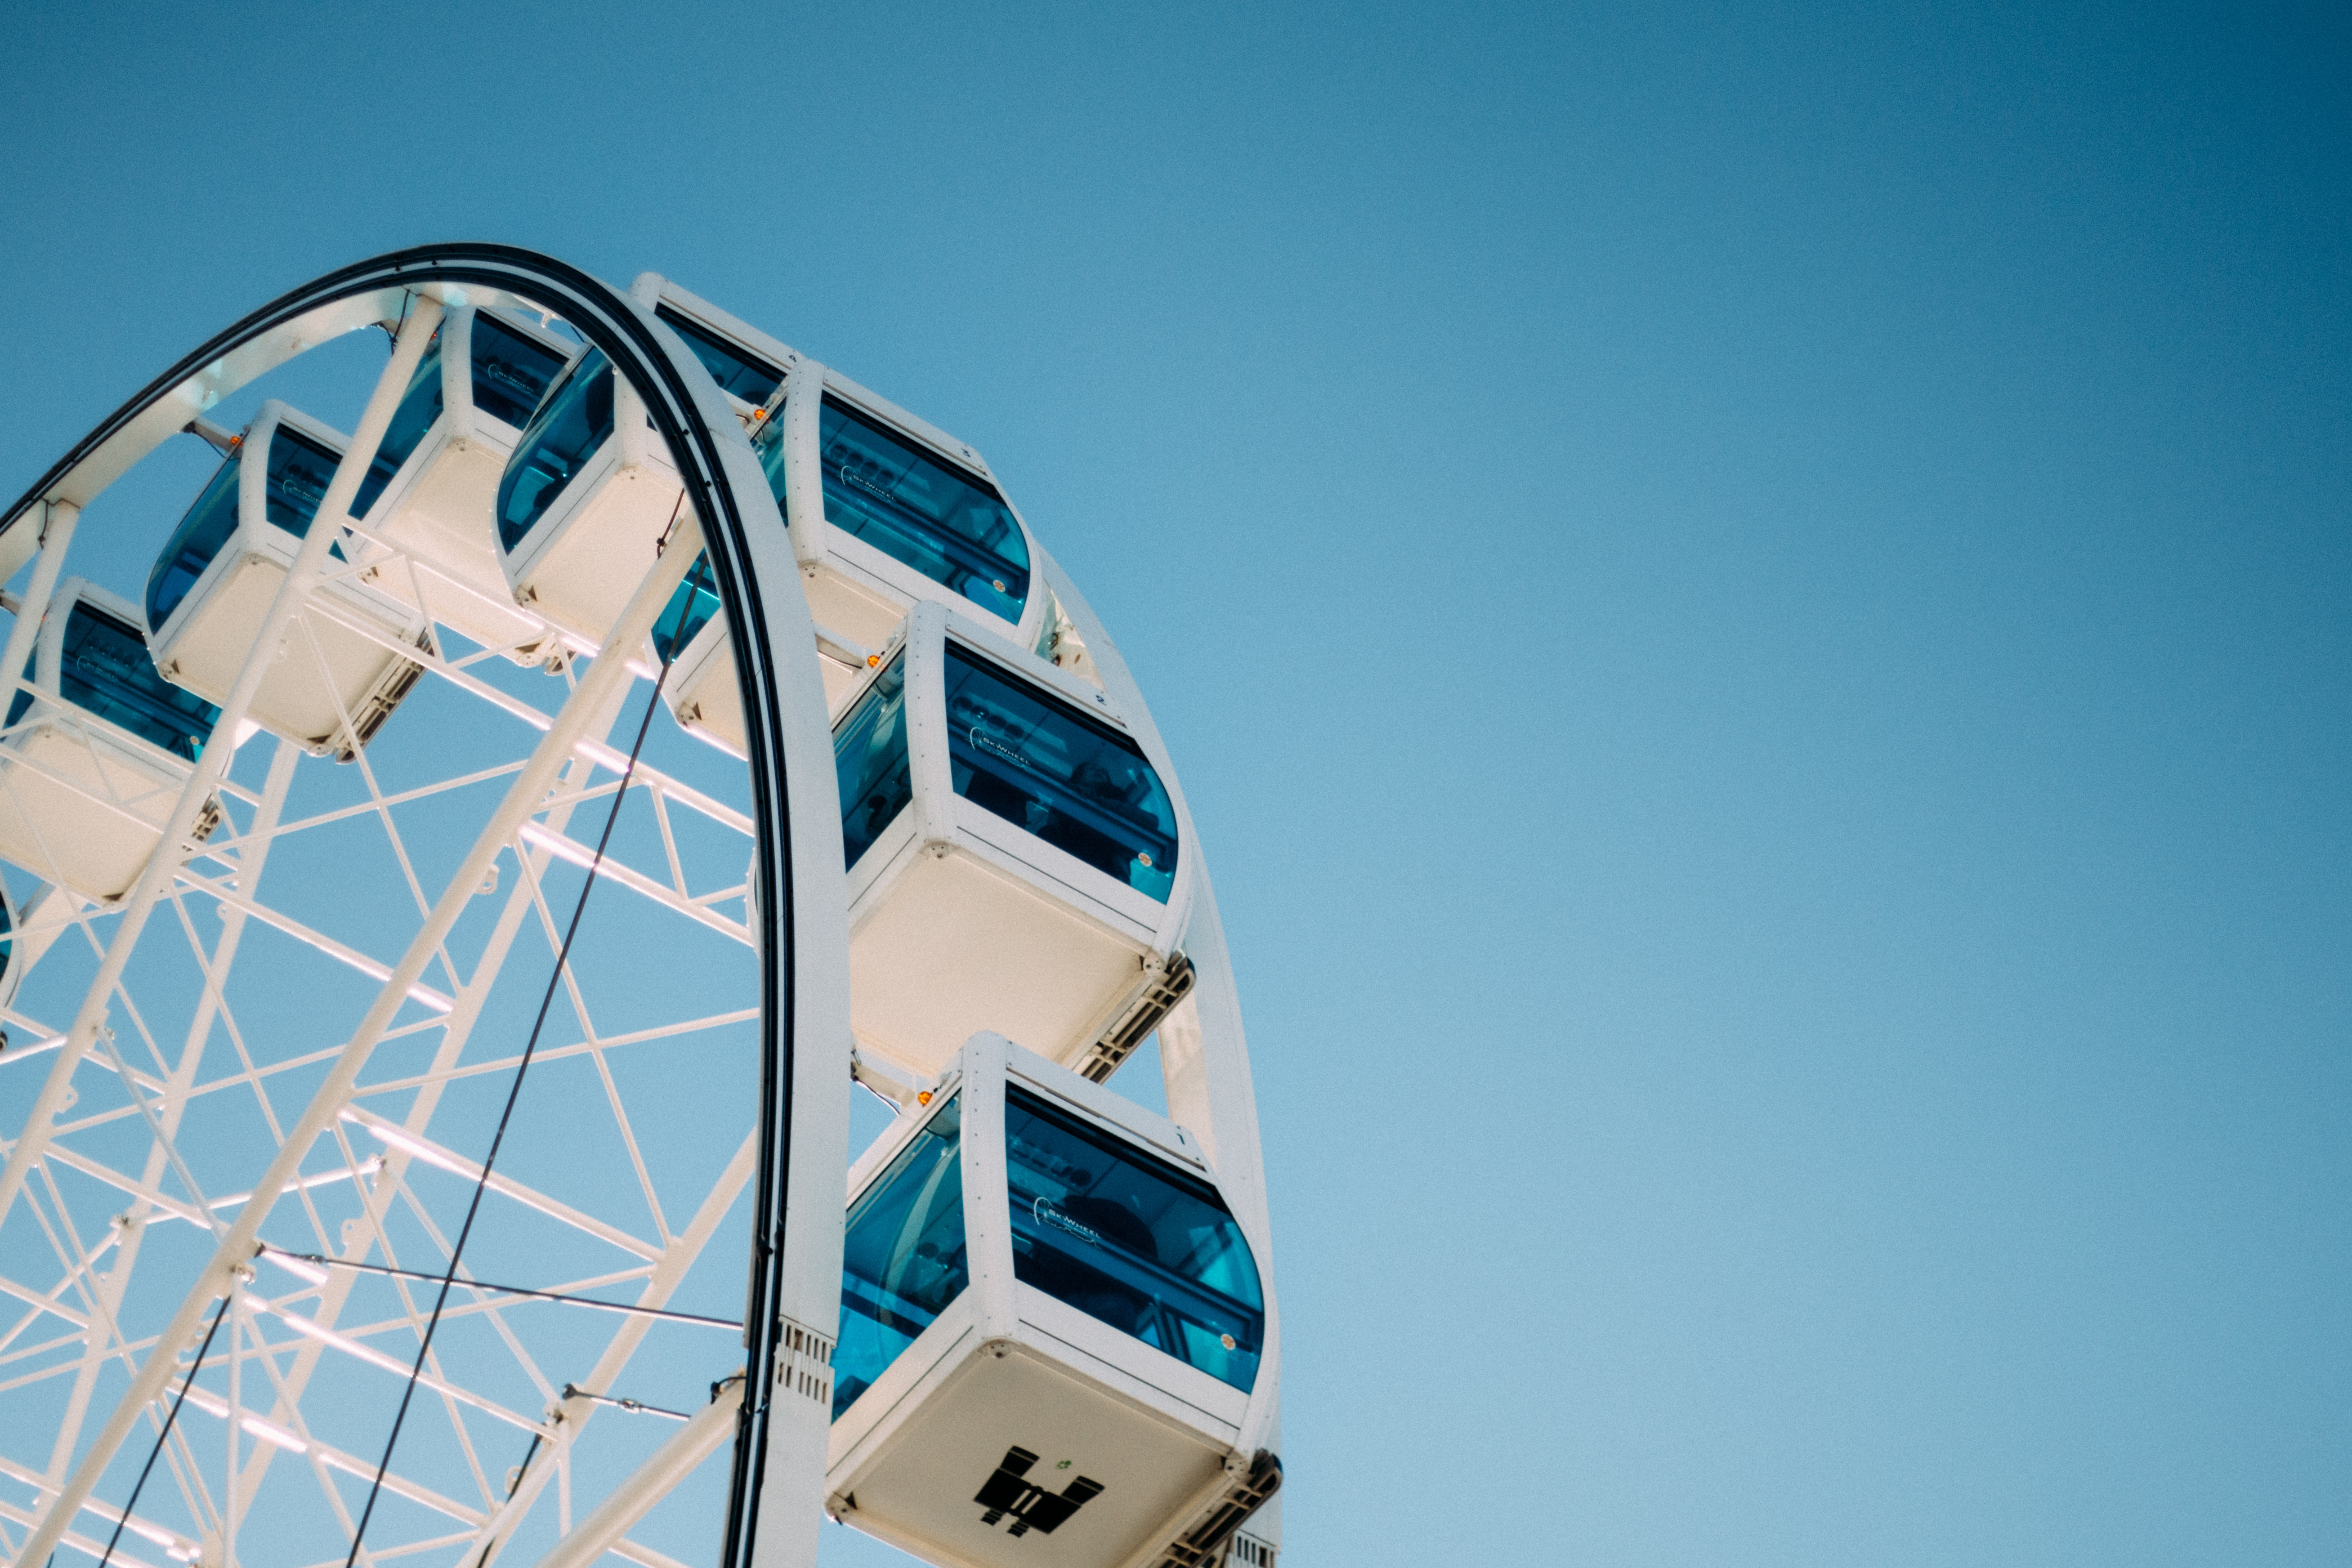 A blue and white Ferris wheel under a blue sky